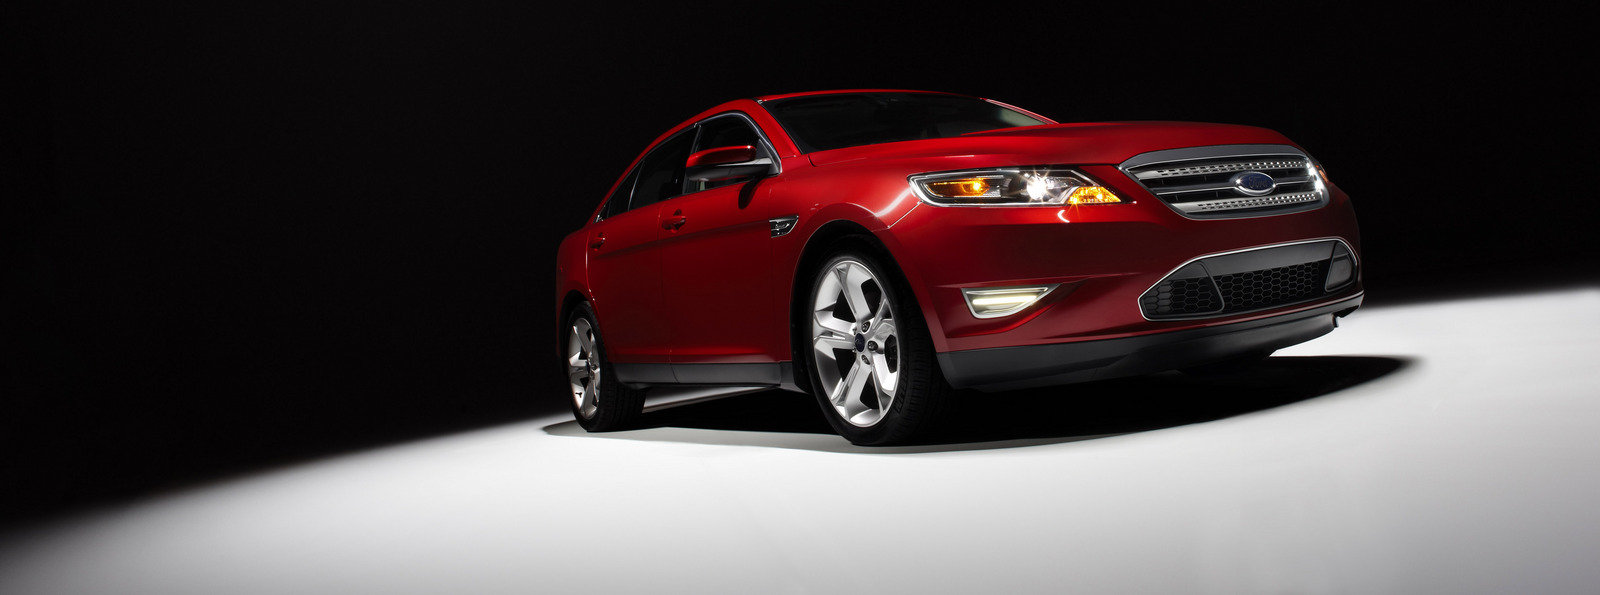 2010 ford taurus sho picture 306637 car review top speed. Black Bedroom Furniture Sets. Home Design Ideas